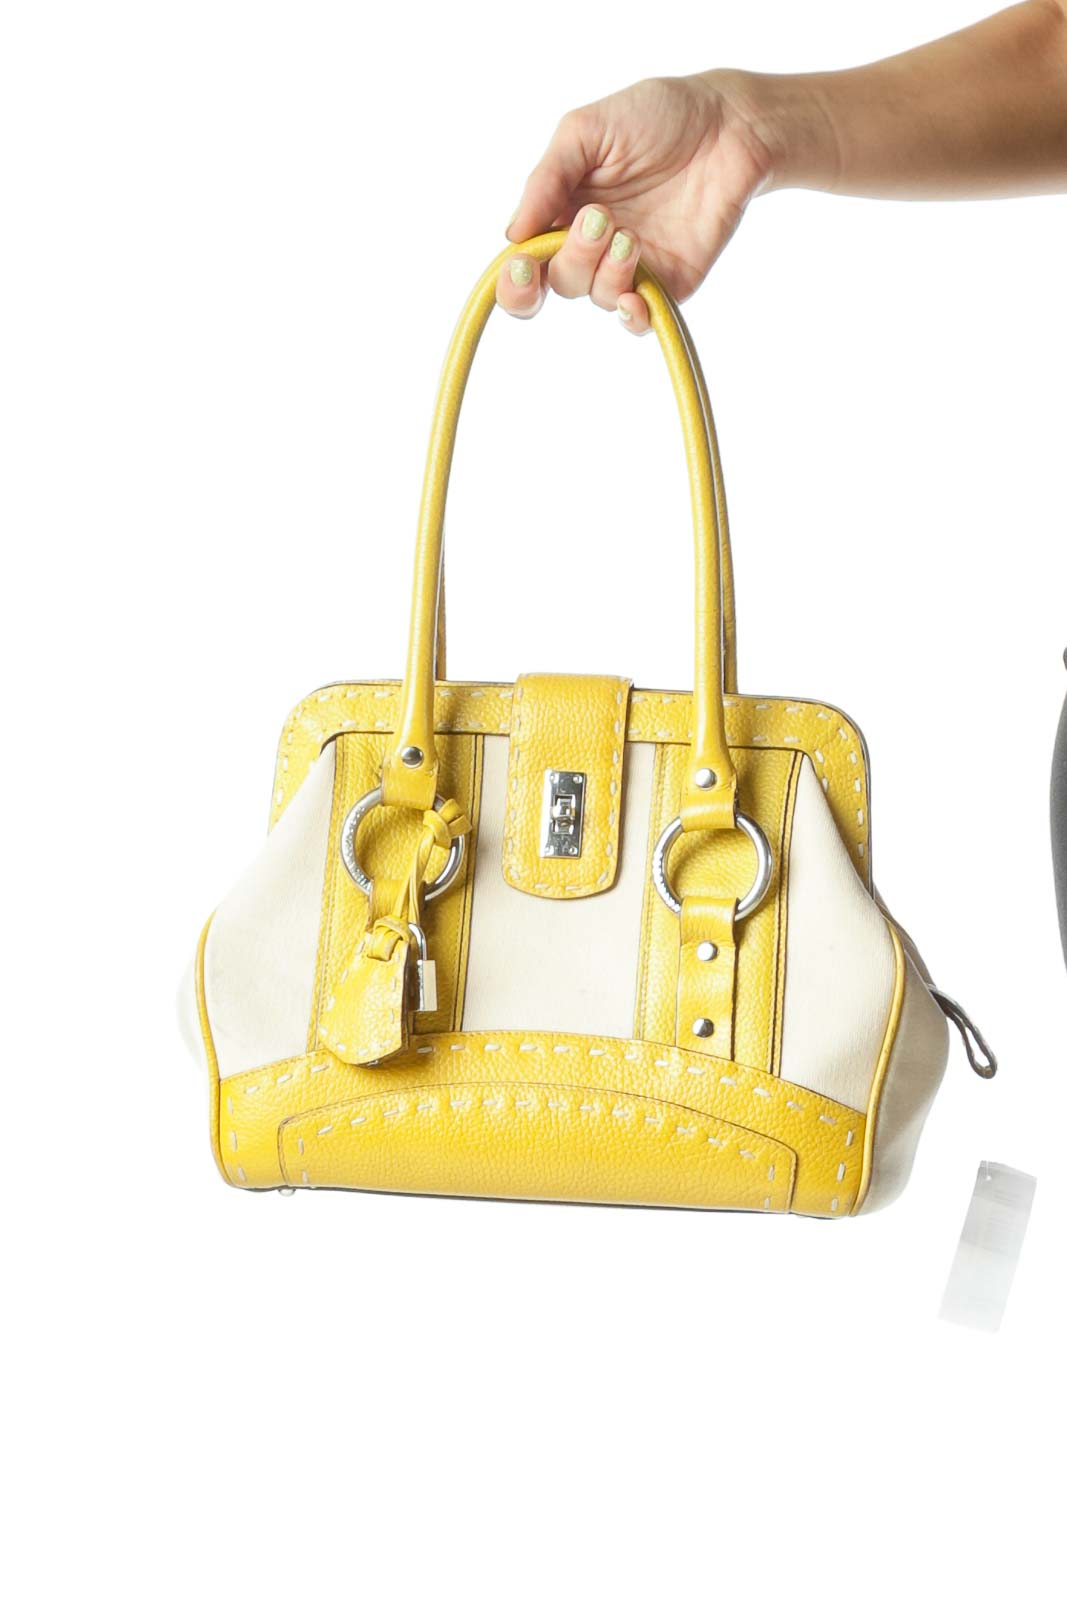 Yellow Beige Textured Satchel with Handles